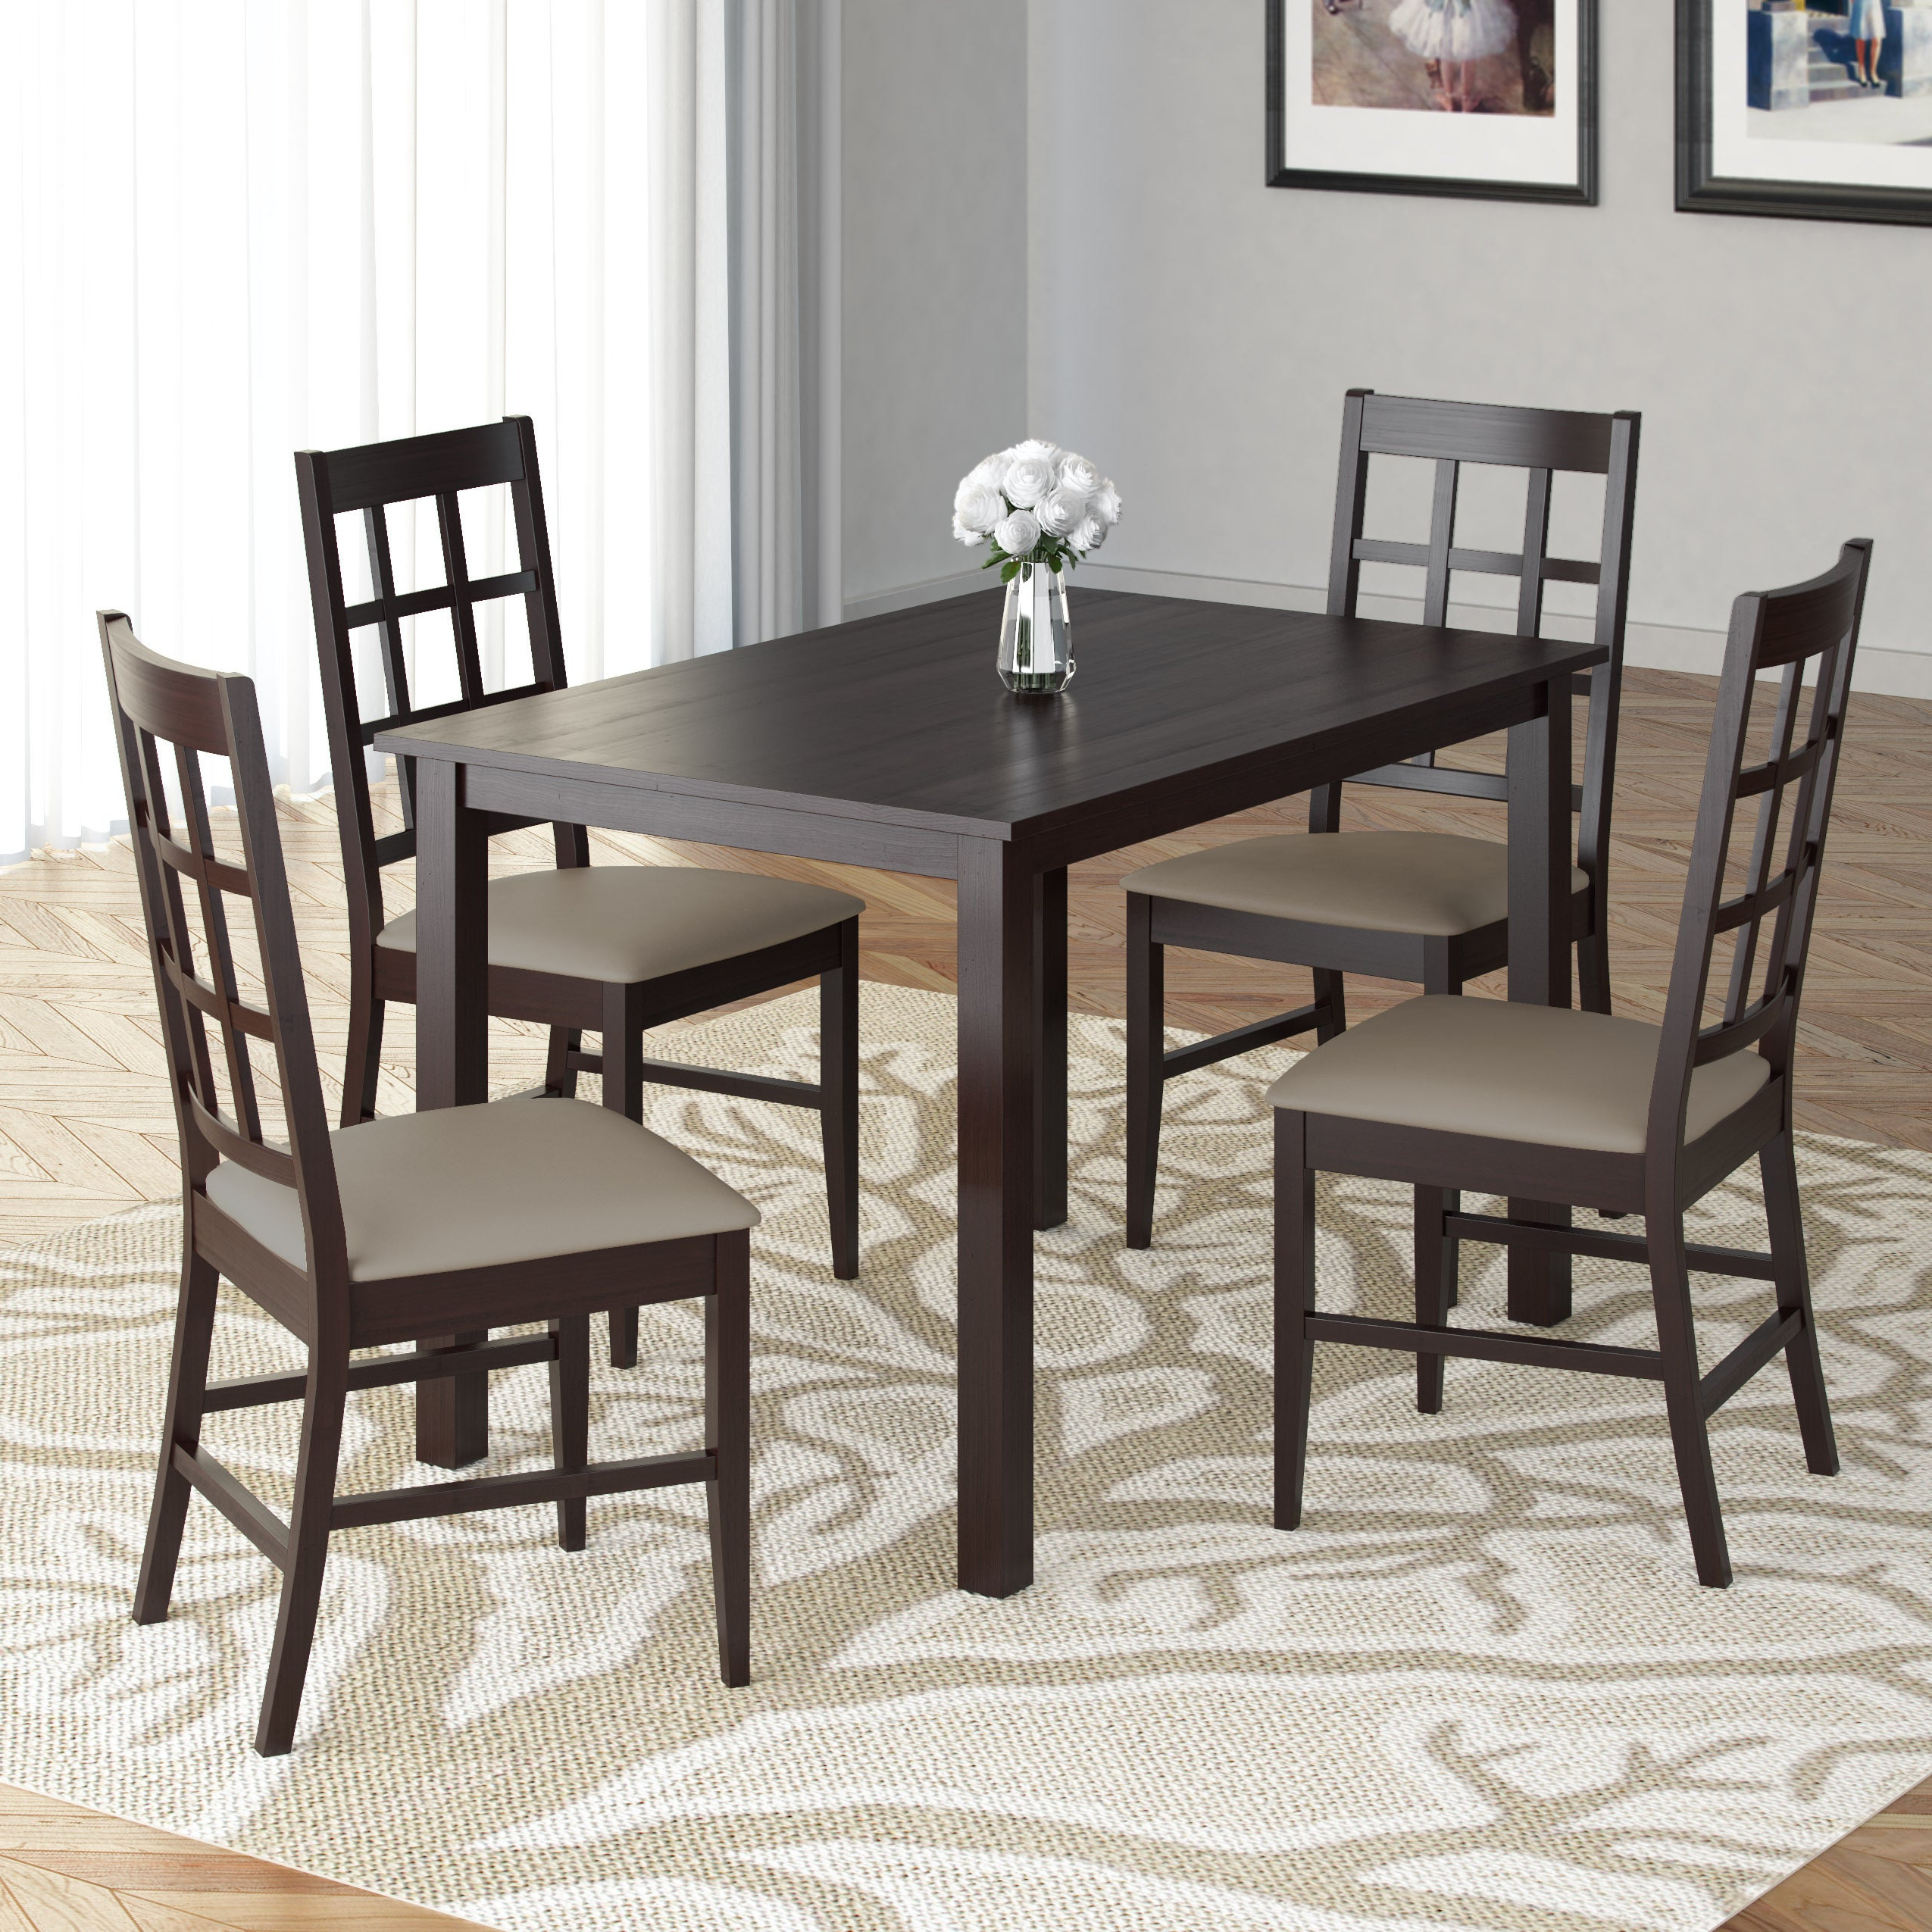 2019 Atwood Transitional Square Dining Tables Pertaining To Atwood 5Pc Dining Set With Taupe Stone Leatherette Seats (View 1 of 25)